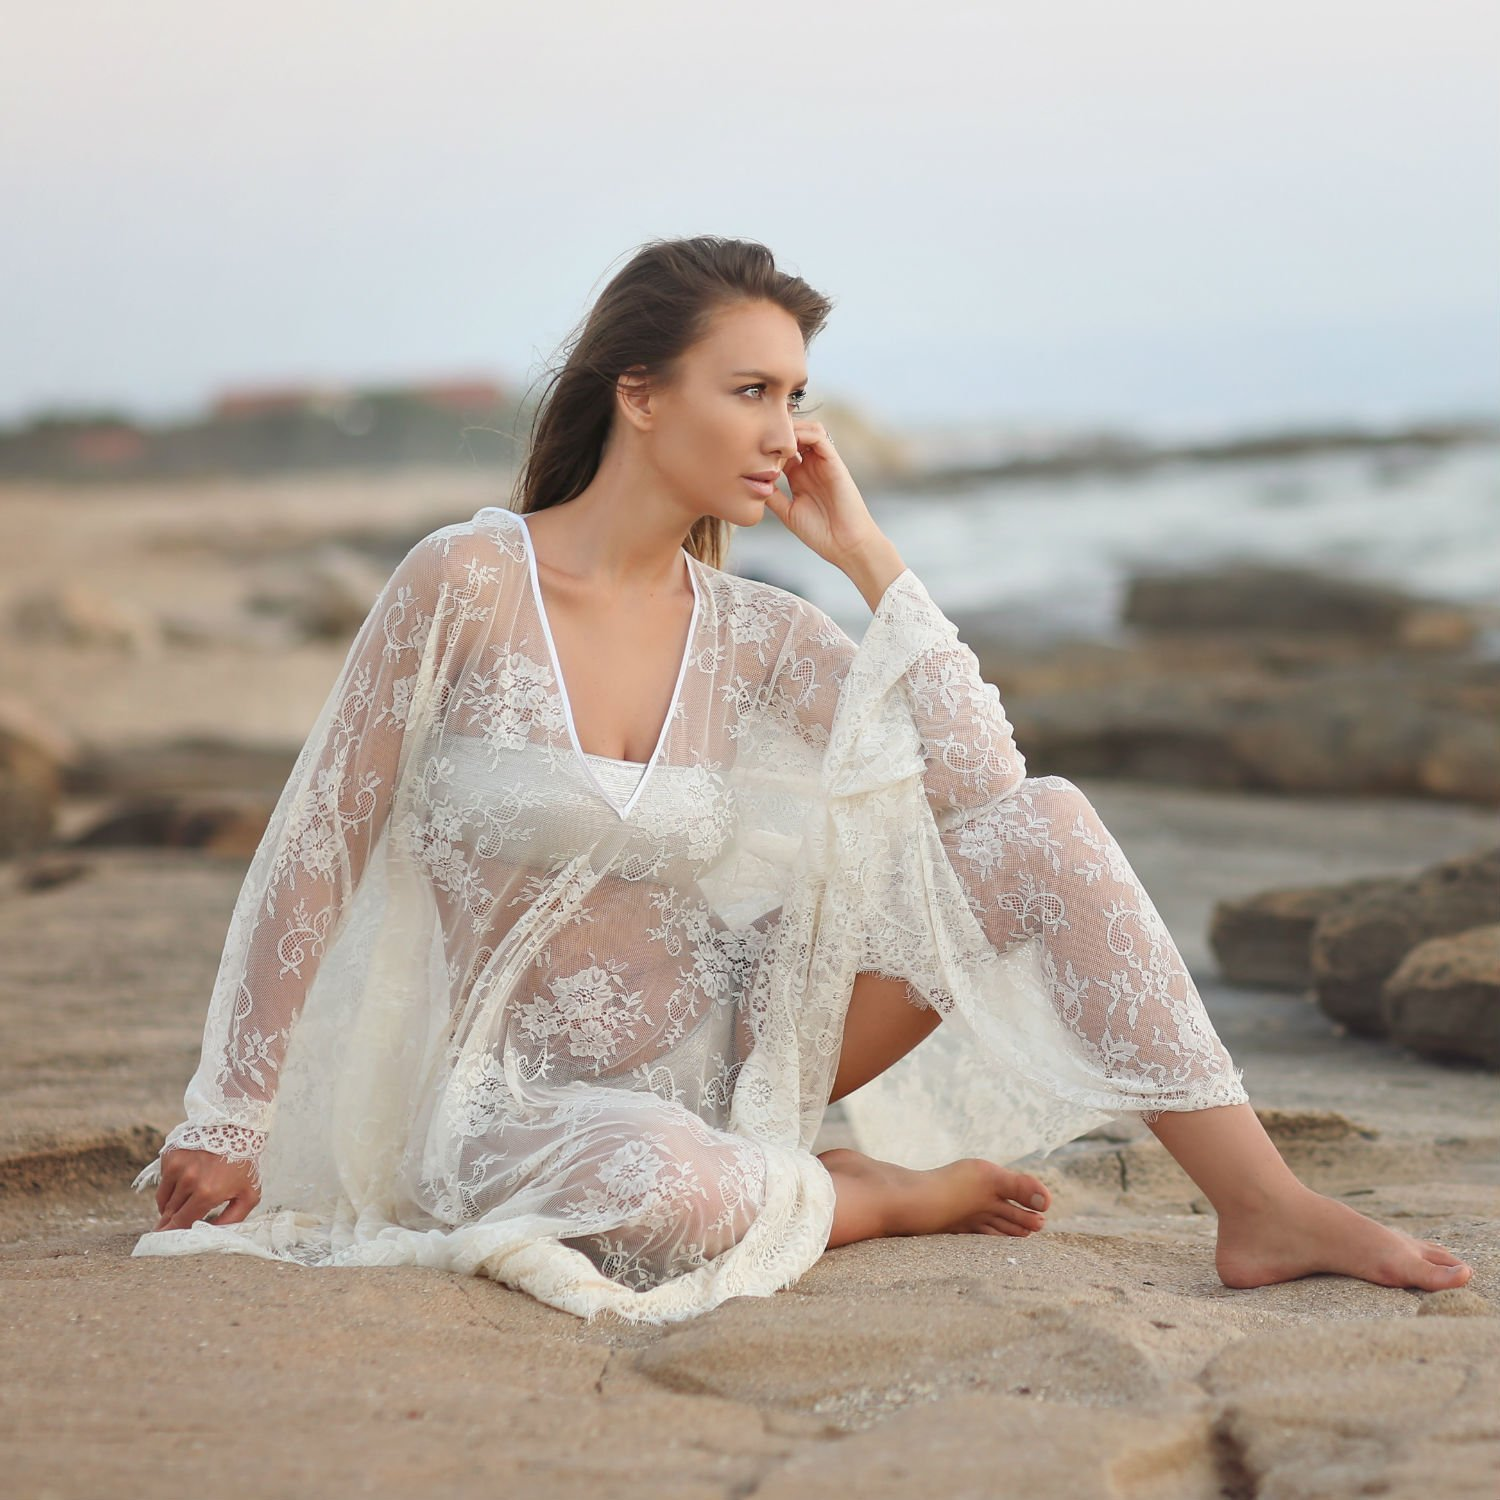 Bridal Kaftan Dress Made of Soft Lace, Boho Beach Dress